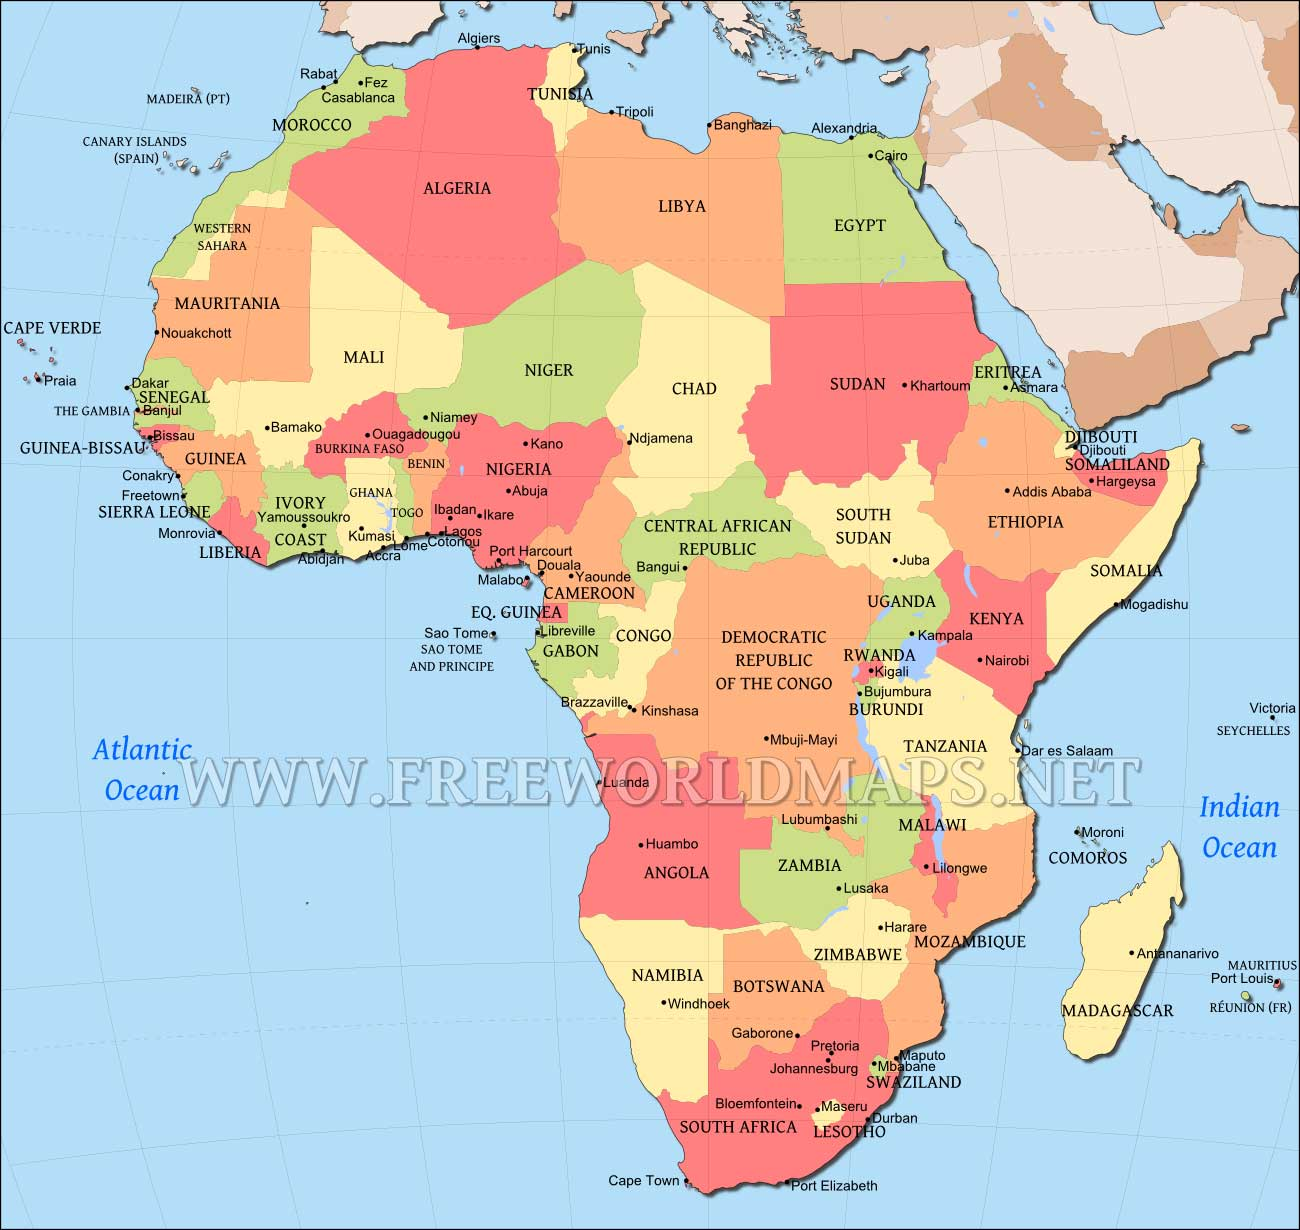 africa map HD Wallpapers Download africa map Tumblr 1300x1230